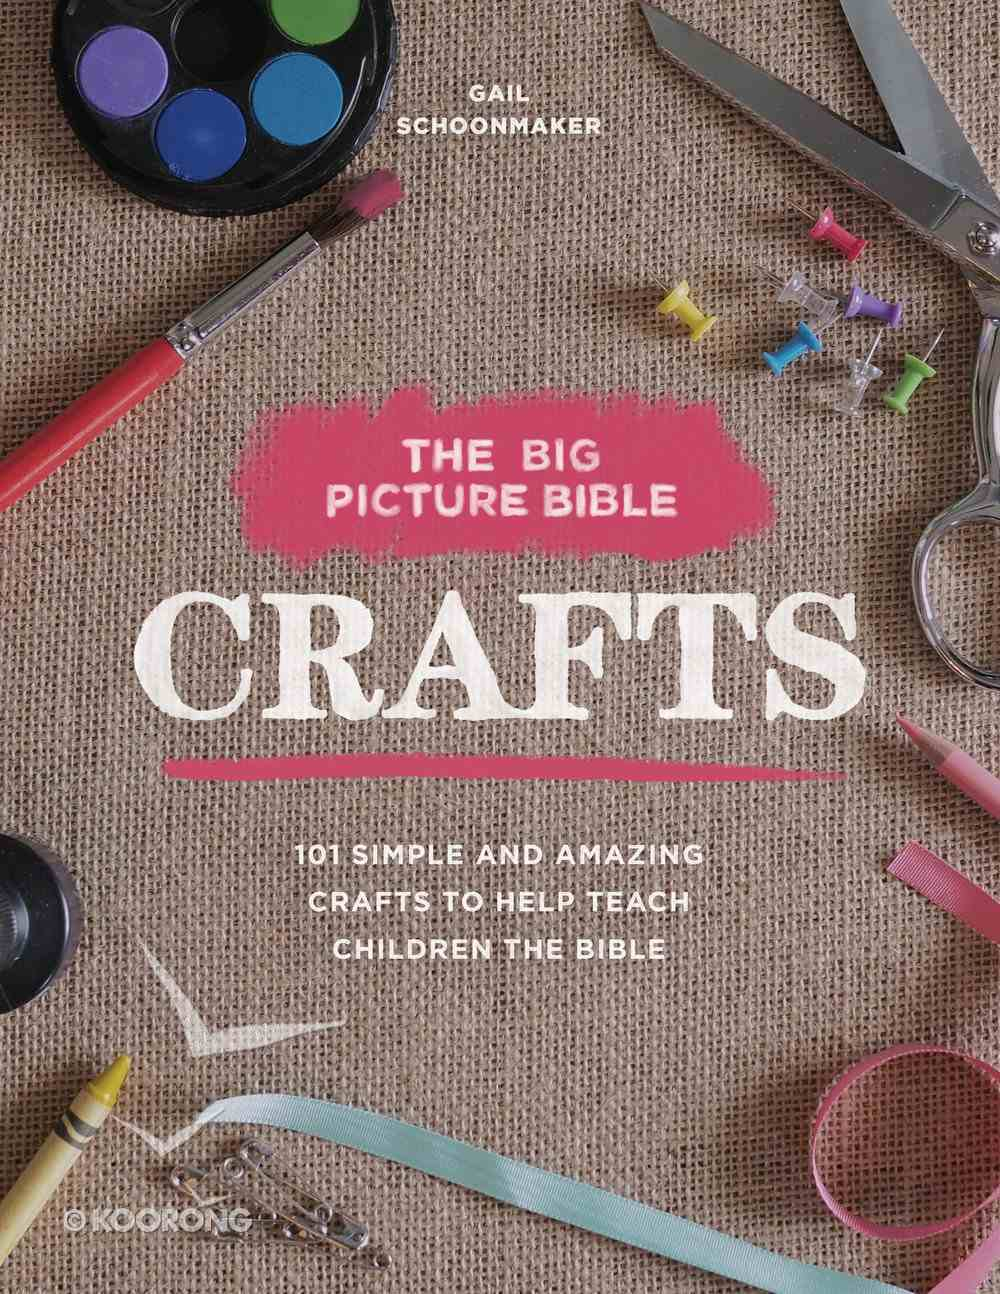 The Big Picture Bible Crafts: 101 Simple and Amazing Crafts to Help Teach Children the Bible Paperback